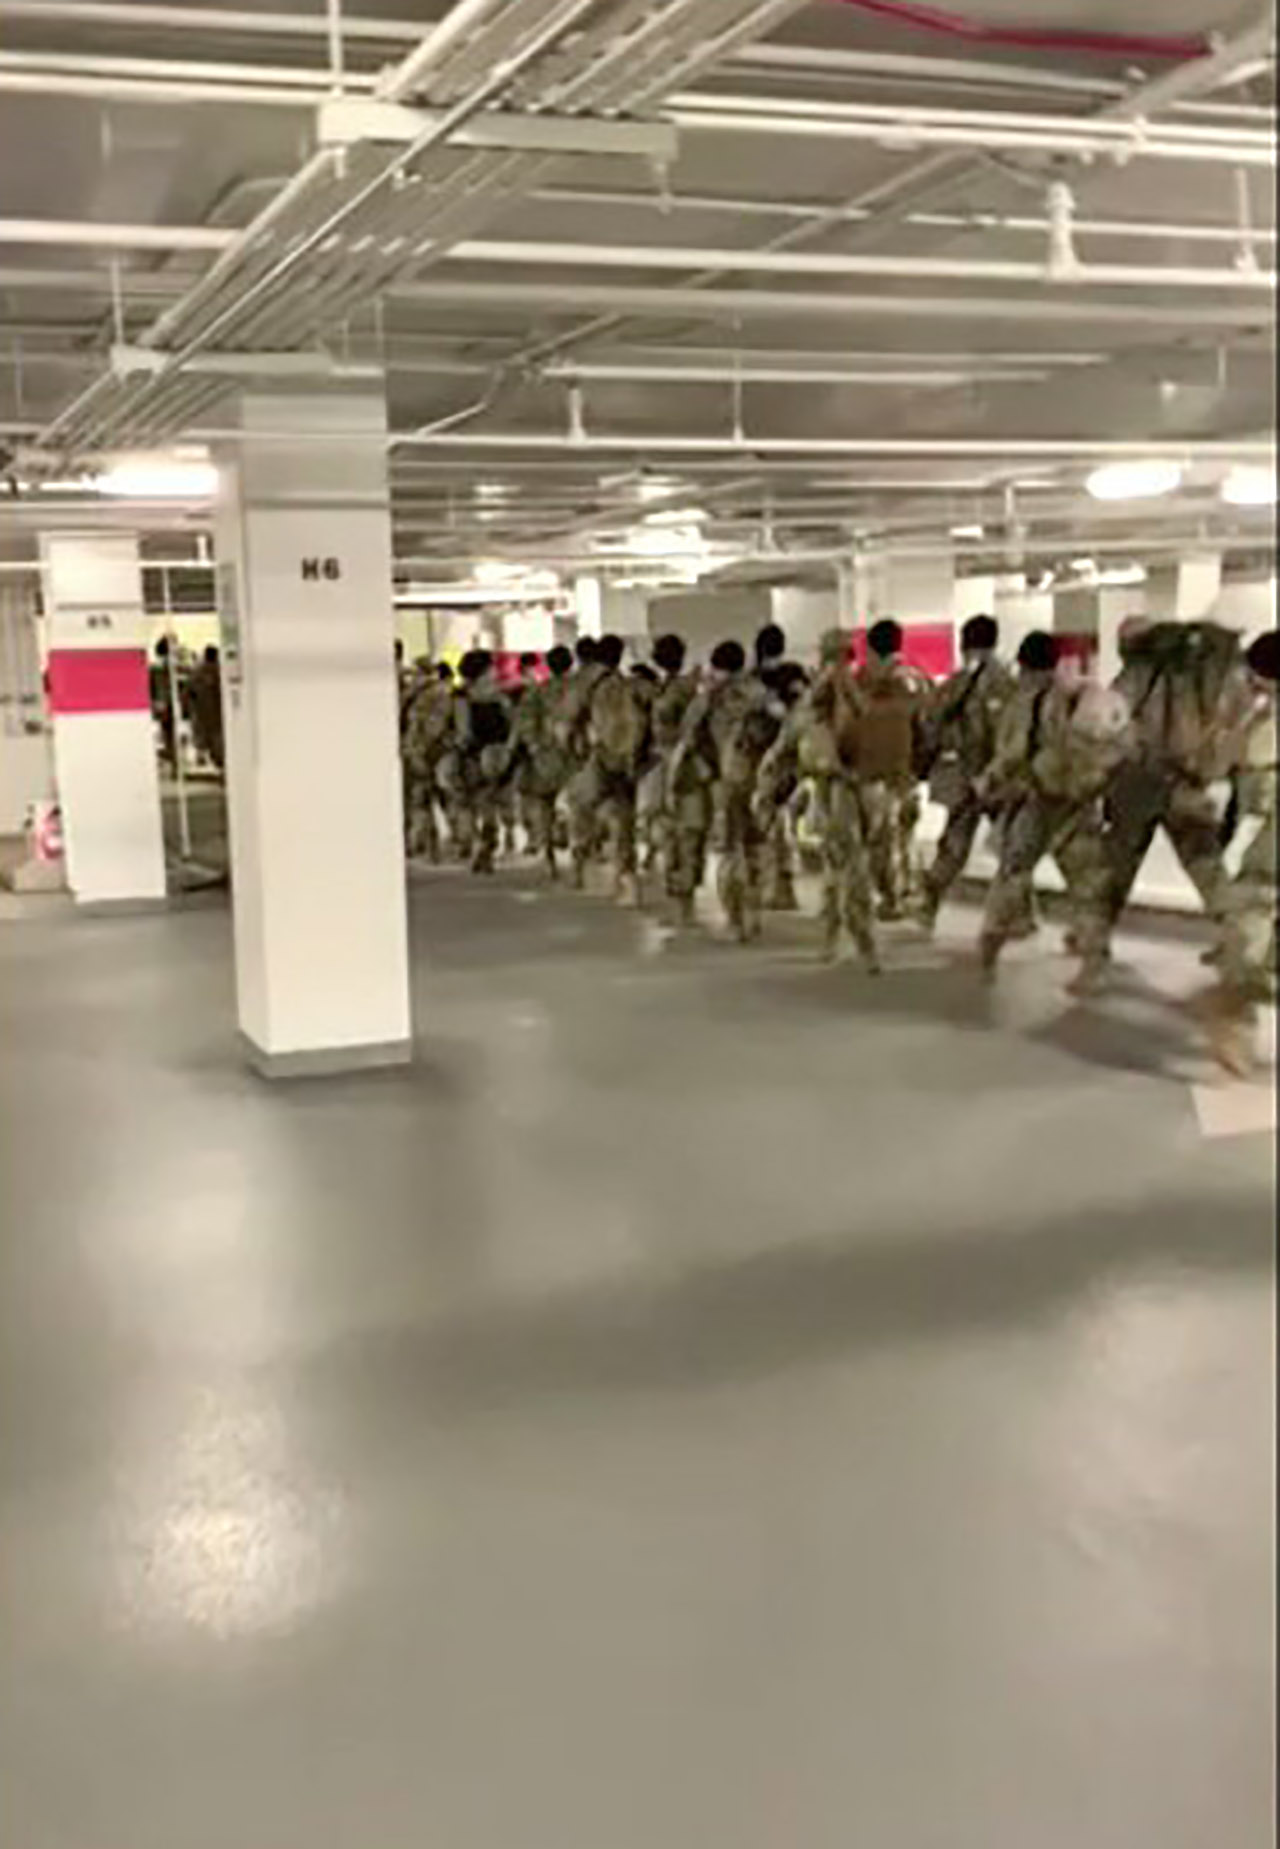 Madison Cawthorn delivers pizzas to National Guard troops in parking garage, vows they